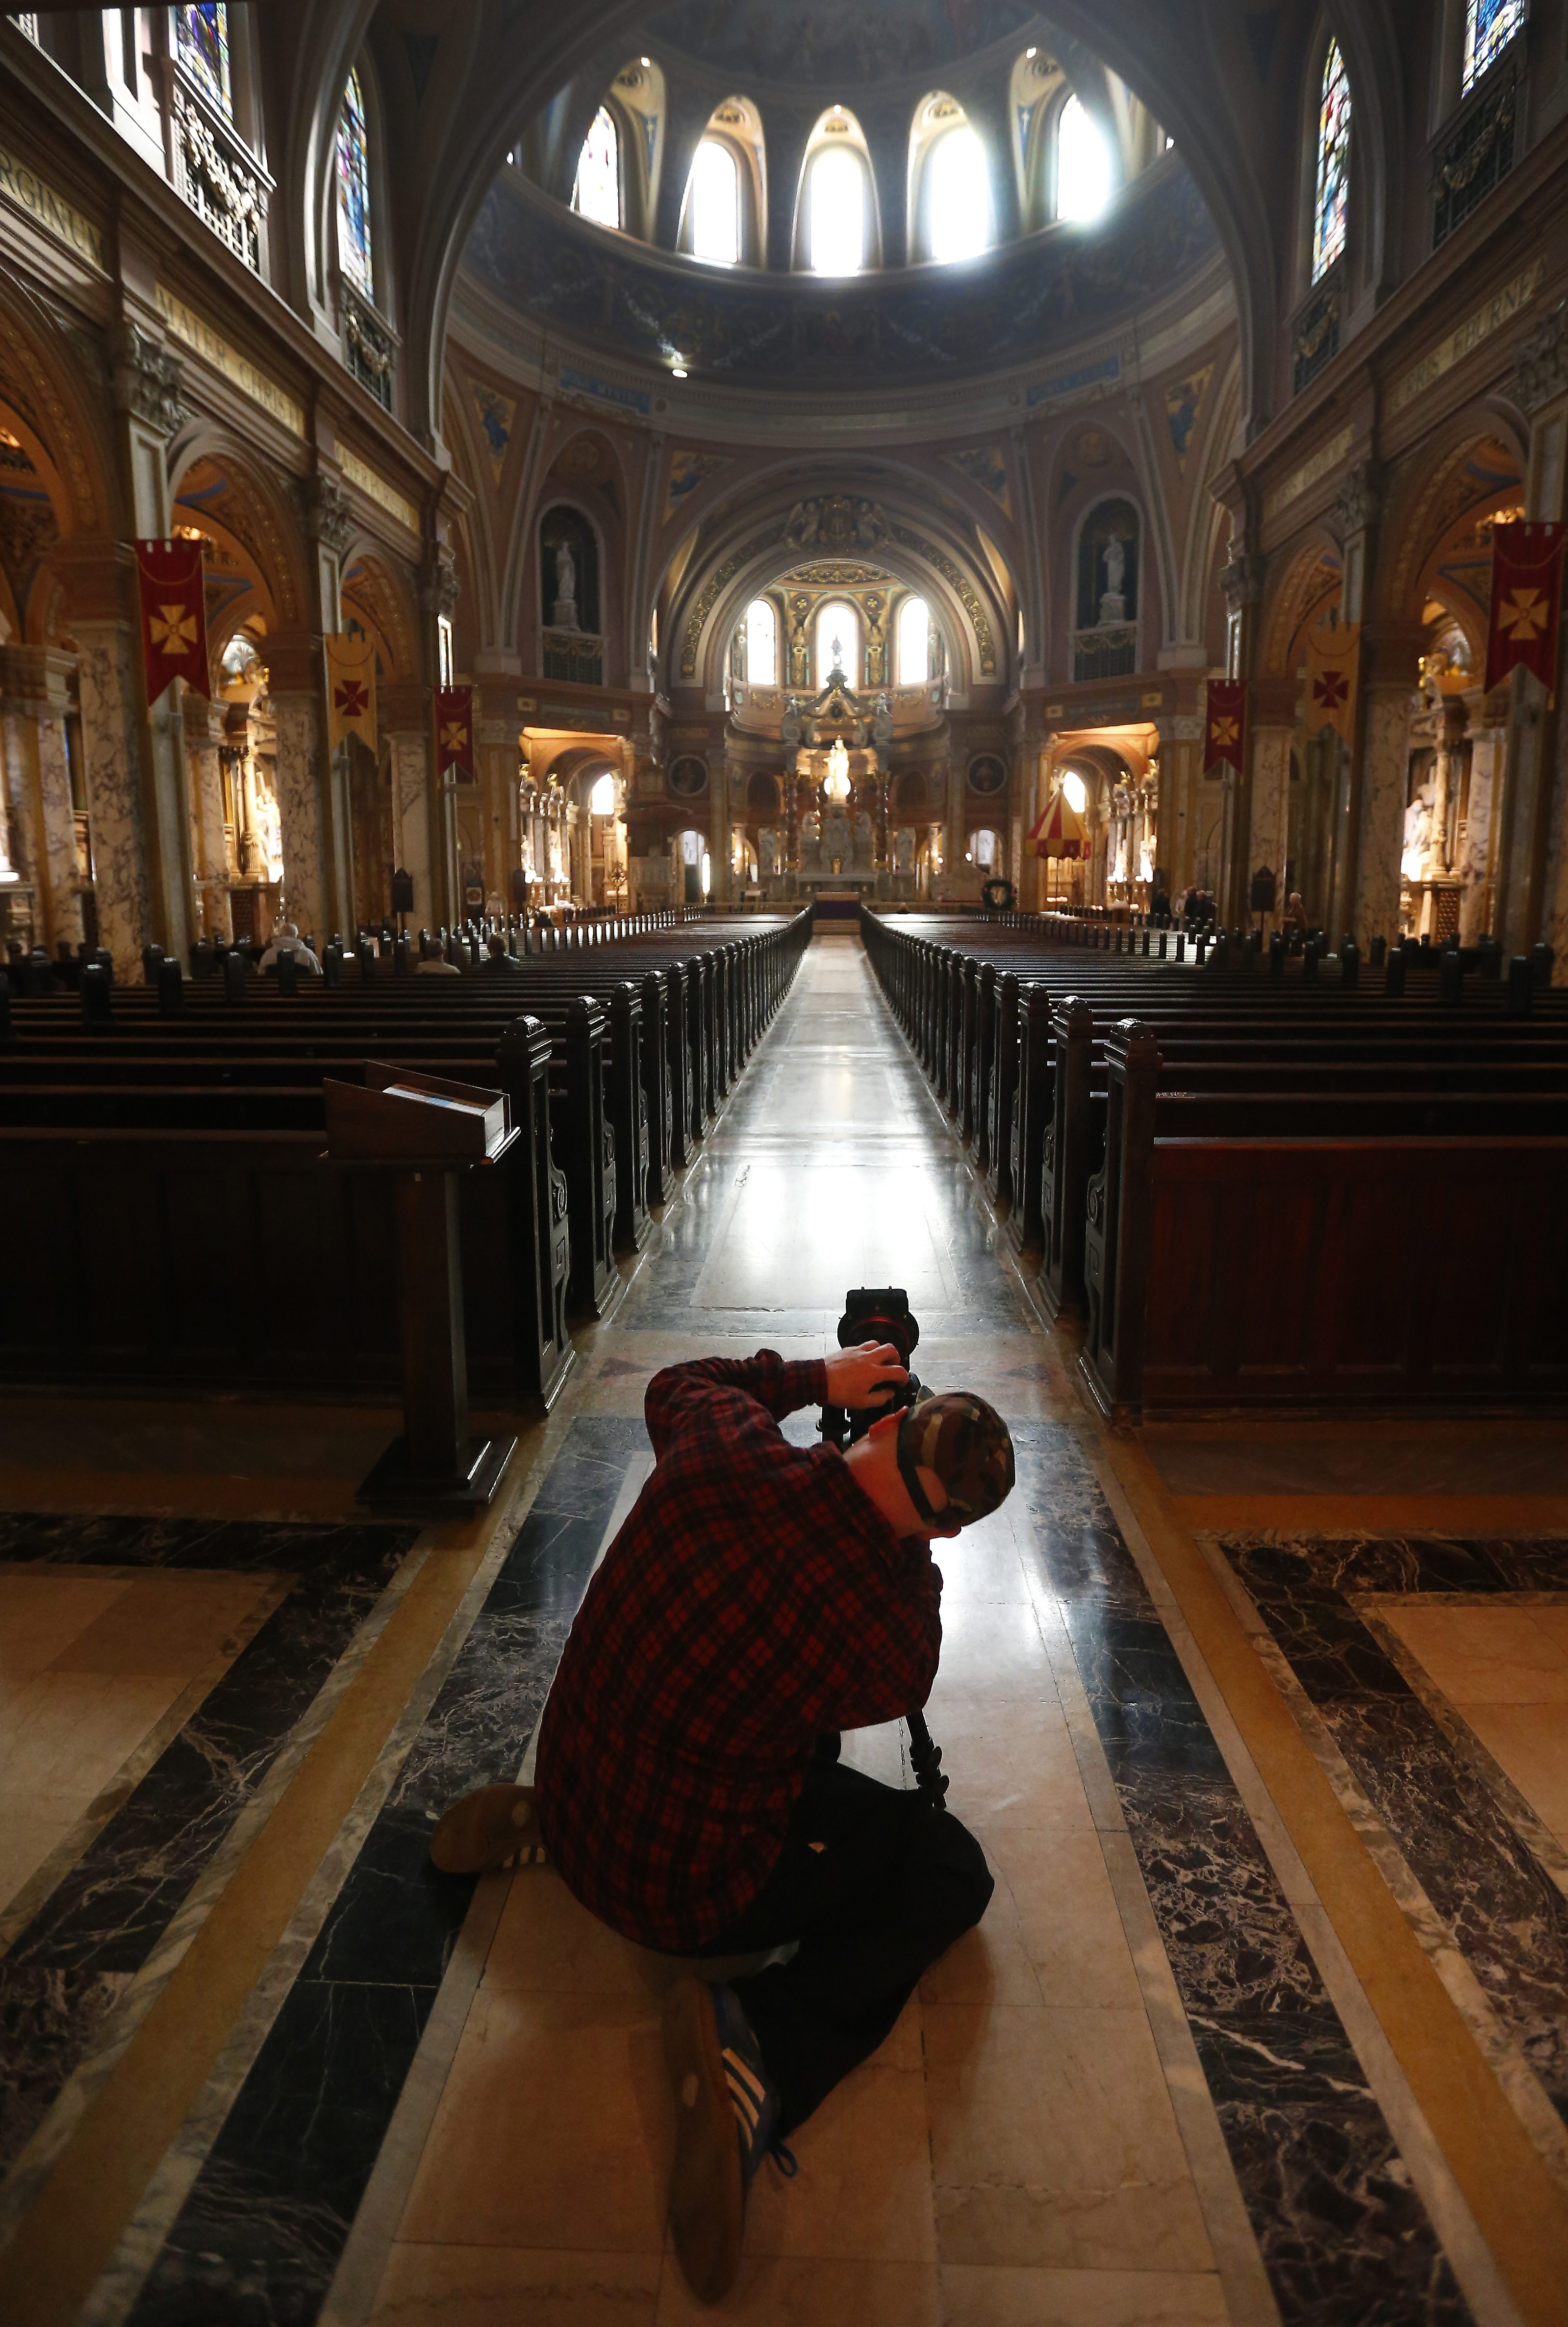 Listen to the silence of a large, open splendid spaces, such as Our Lady of Victory Basilica. Meditate, contemplate, you might even want to pray.